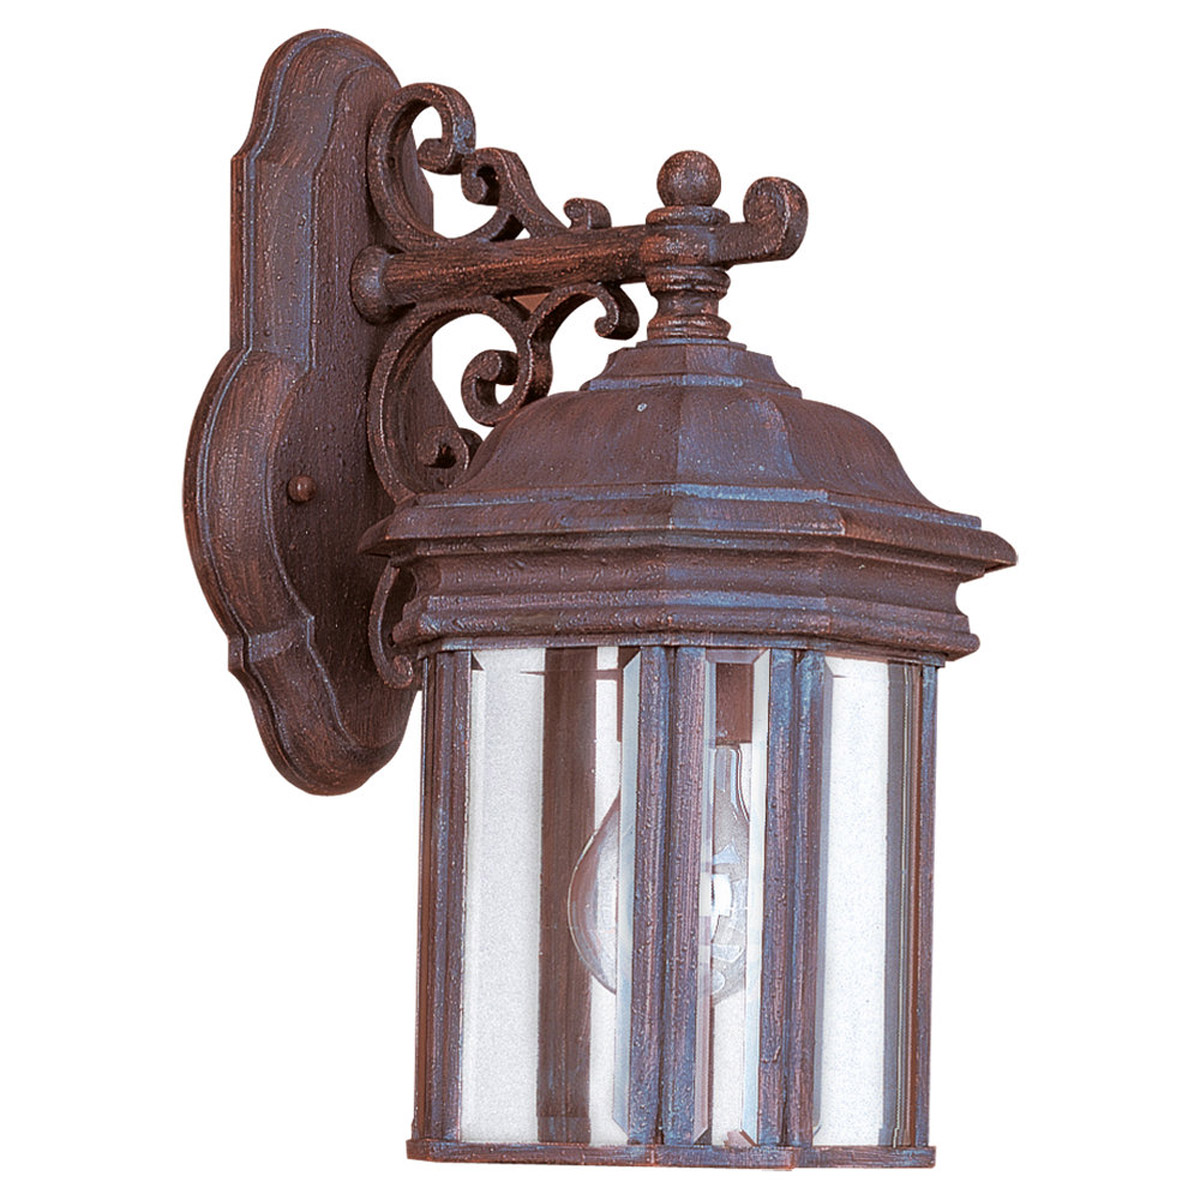 Sea Gull Lighting Hill Gate 1 Light Outdoor Wall Lantern in Textured Rust Patina 8835-08